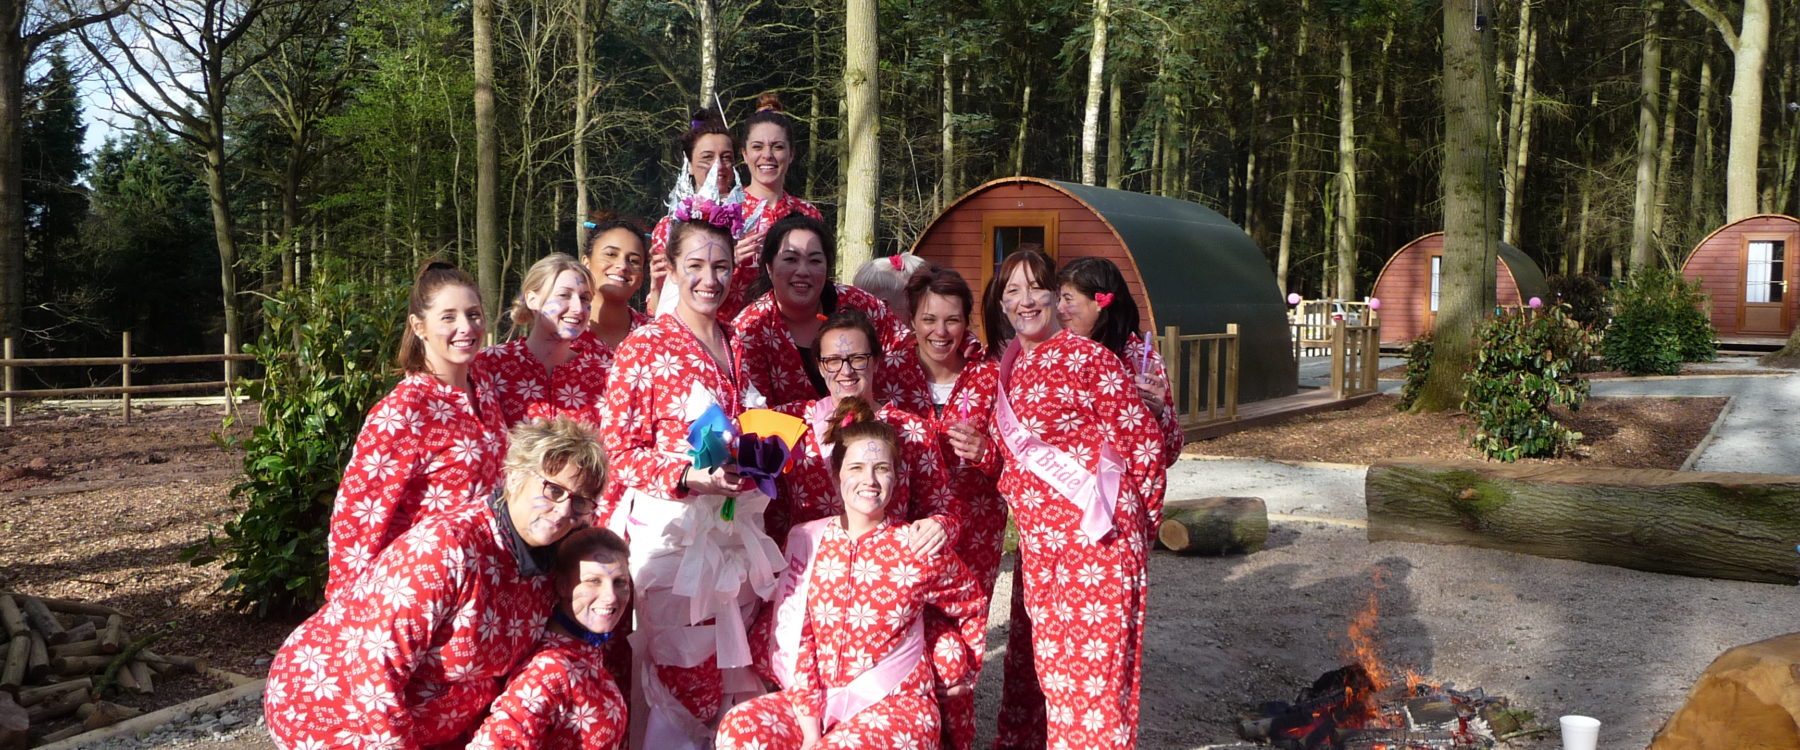 Glamping site for exclusive hire for hen parties